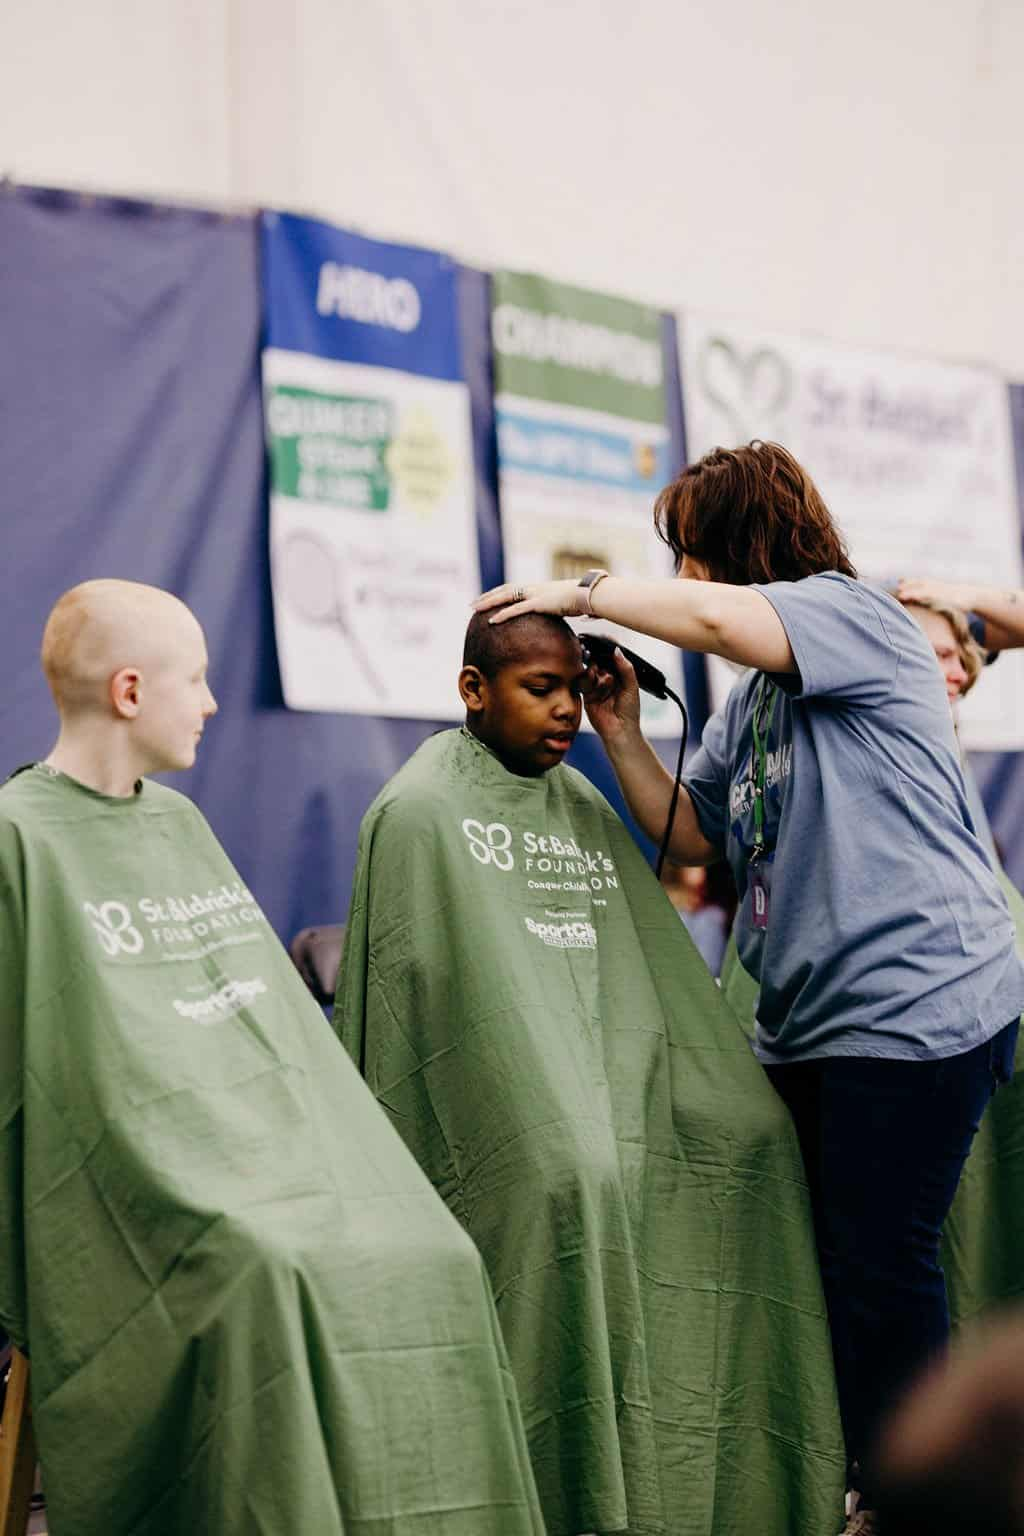 St. Baldricks | I bet you wouldn't shave your head 149